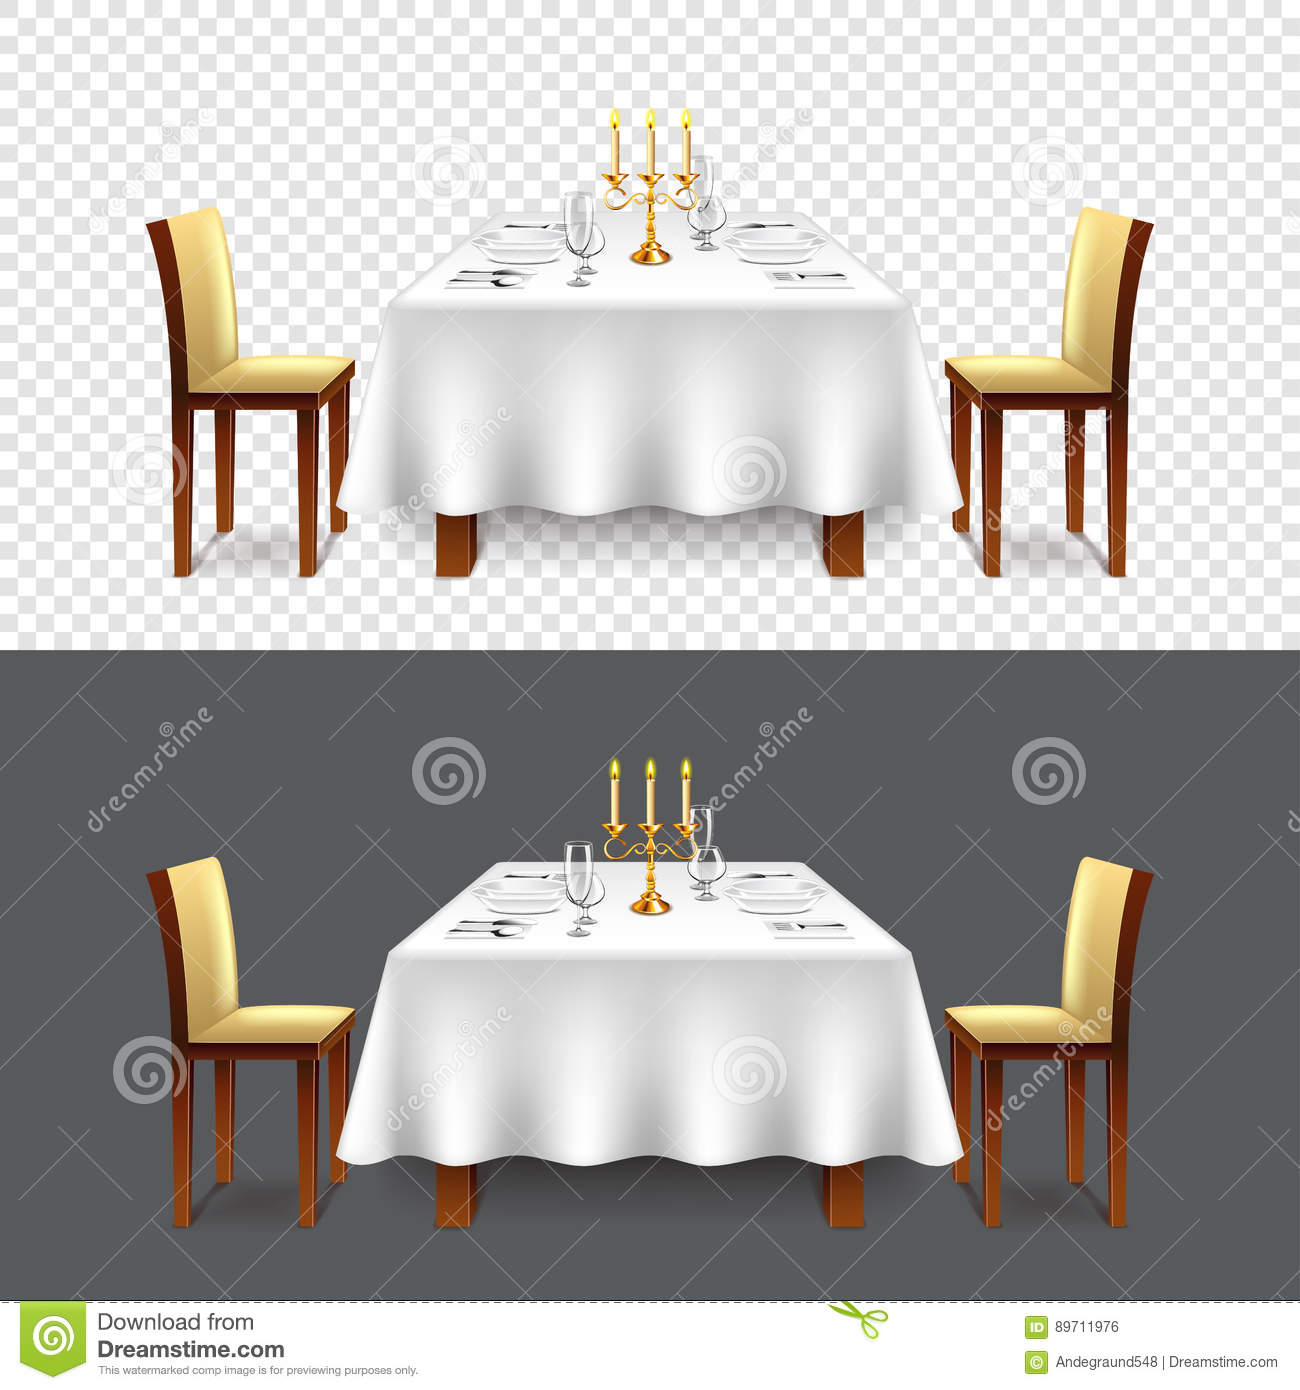 Restaurant table for two - Realistic Restaurant Table Two